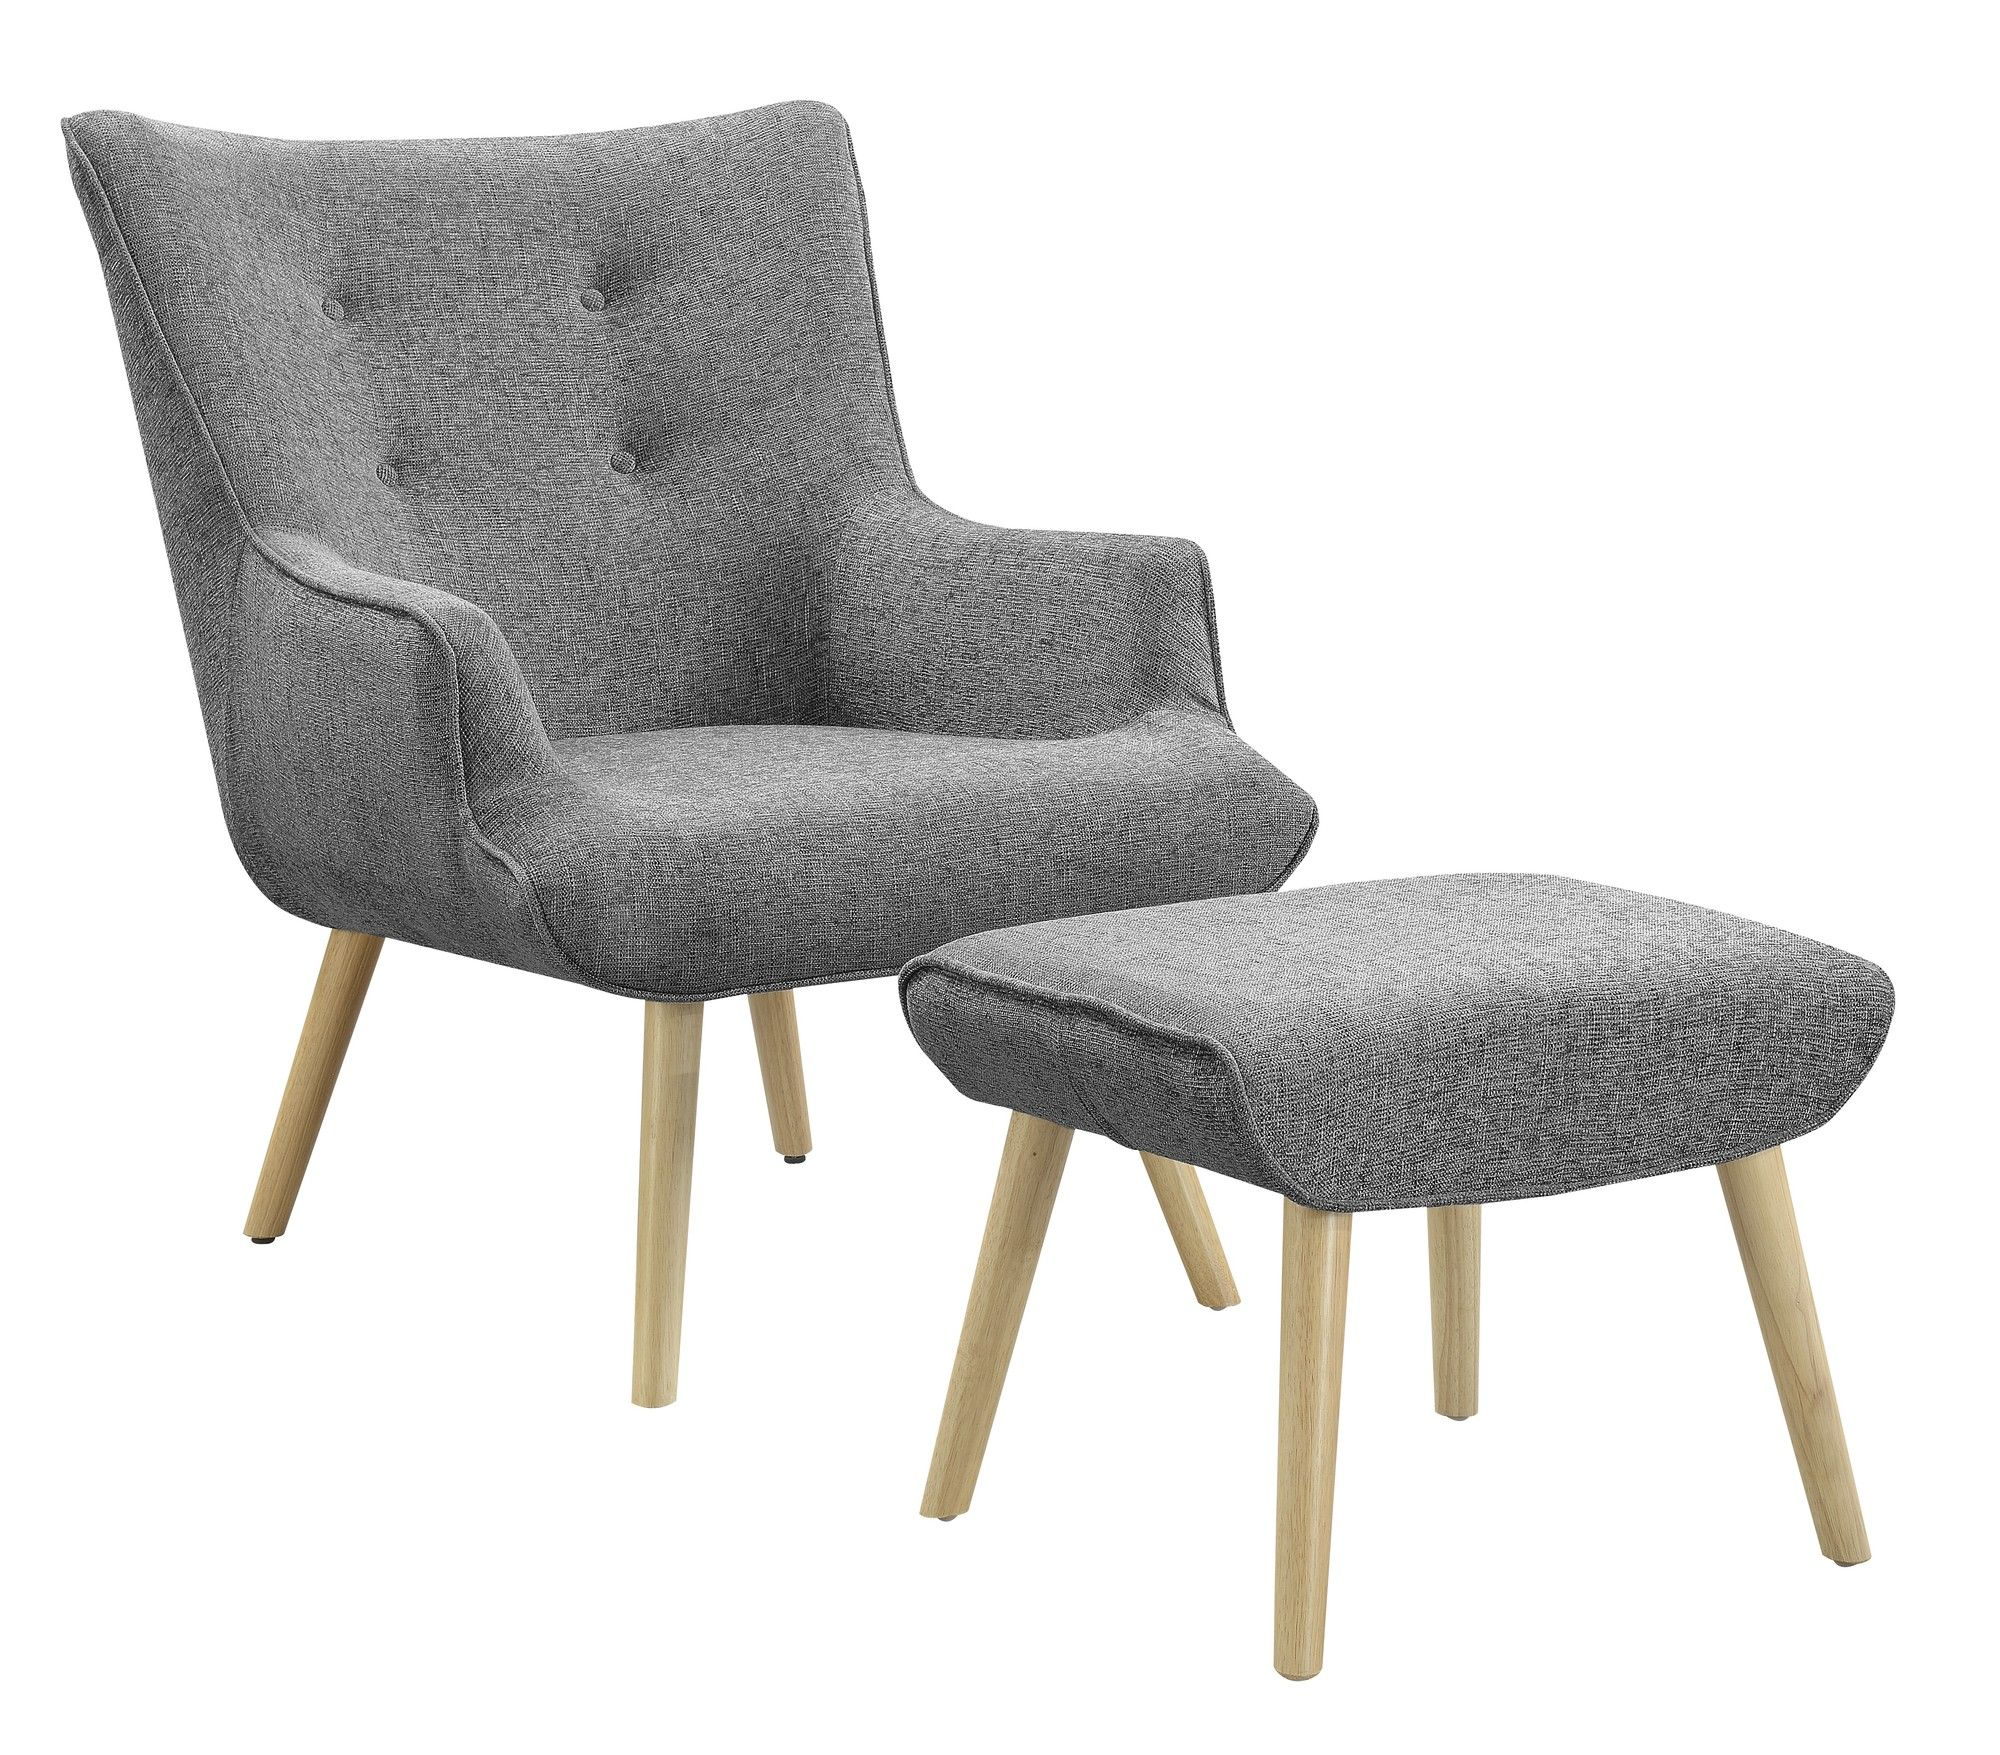 Ordinaire Miles Armchair U0026 Ottoman Set By Milan Direct. Get It Now Or Find More Living